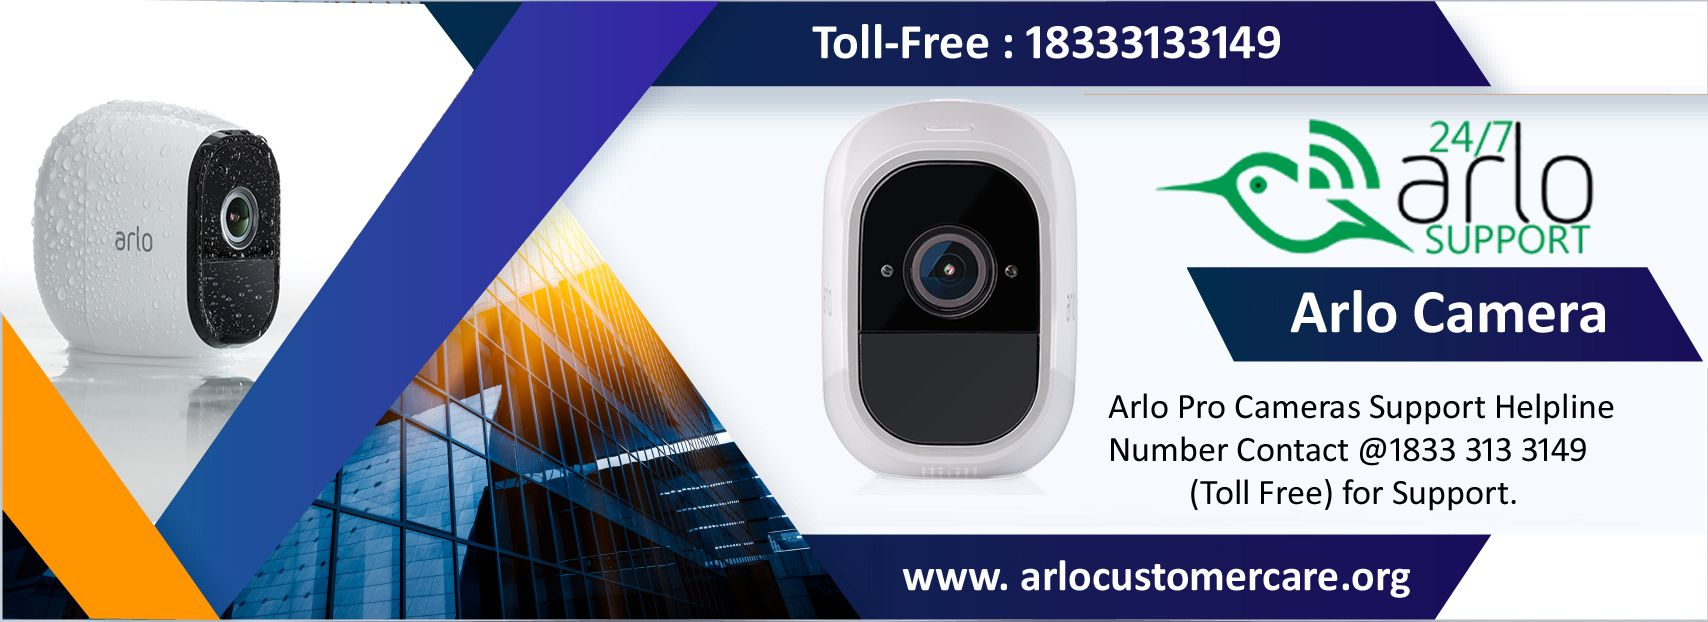 Pin by SHATABDI PLY on Arlo Customer Service Arlo camera